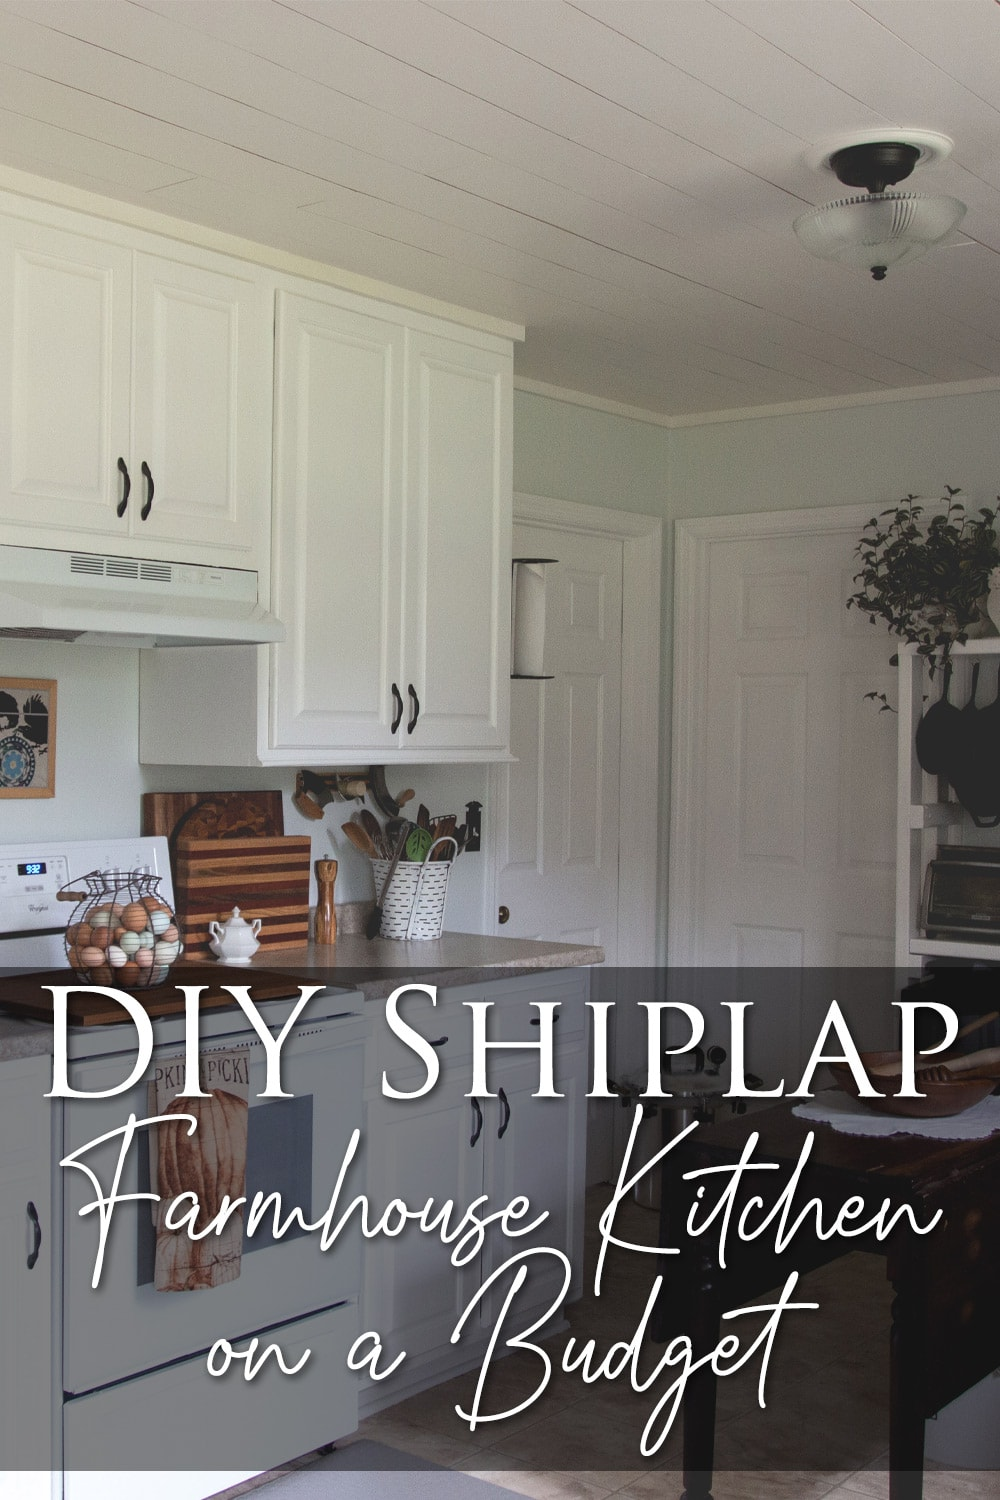 How to Create a Shiplap Ceiling - Farmhouse Kitchen on a Budget